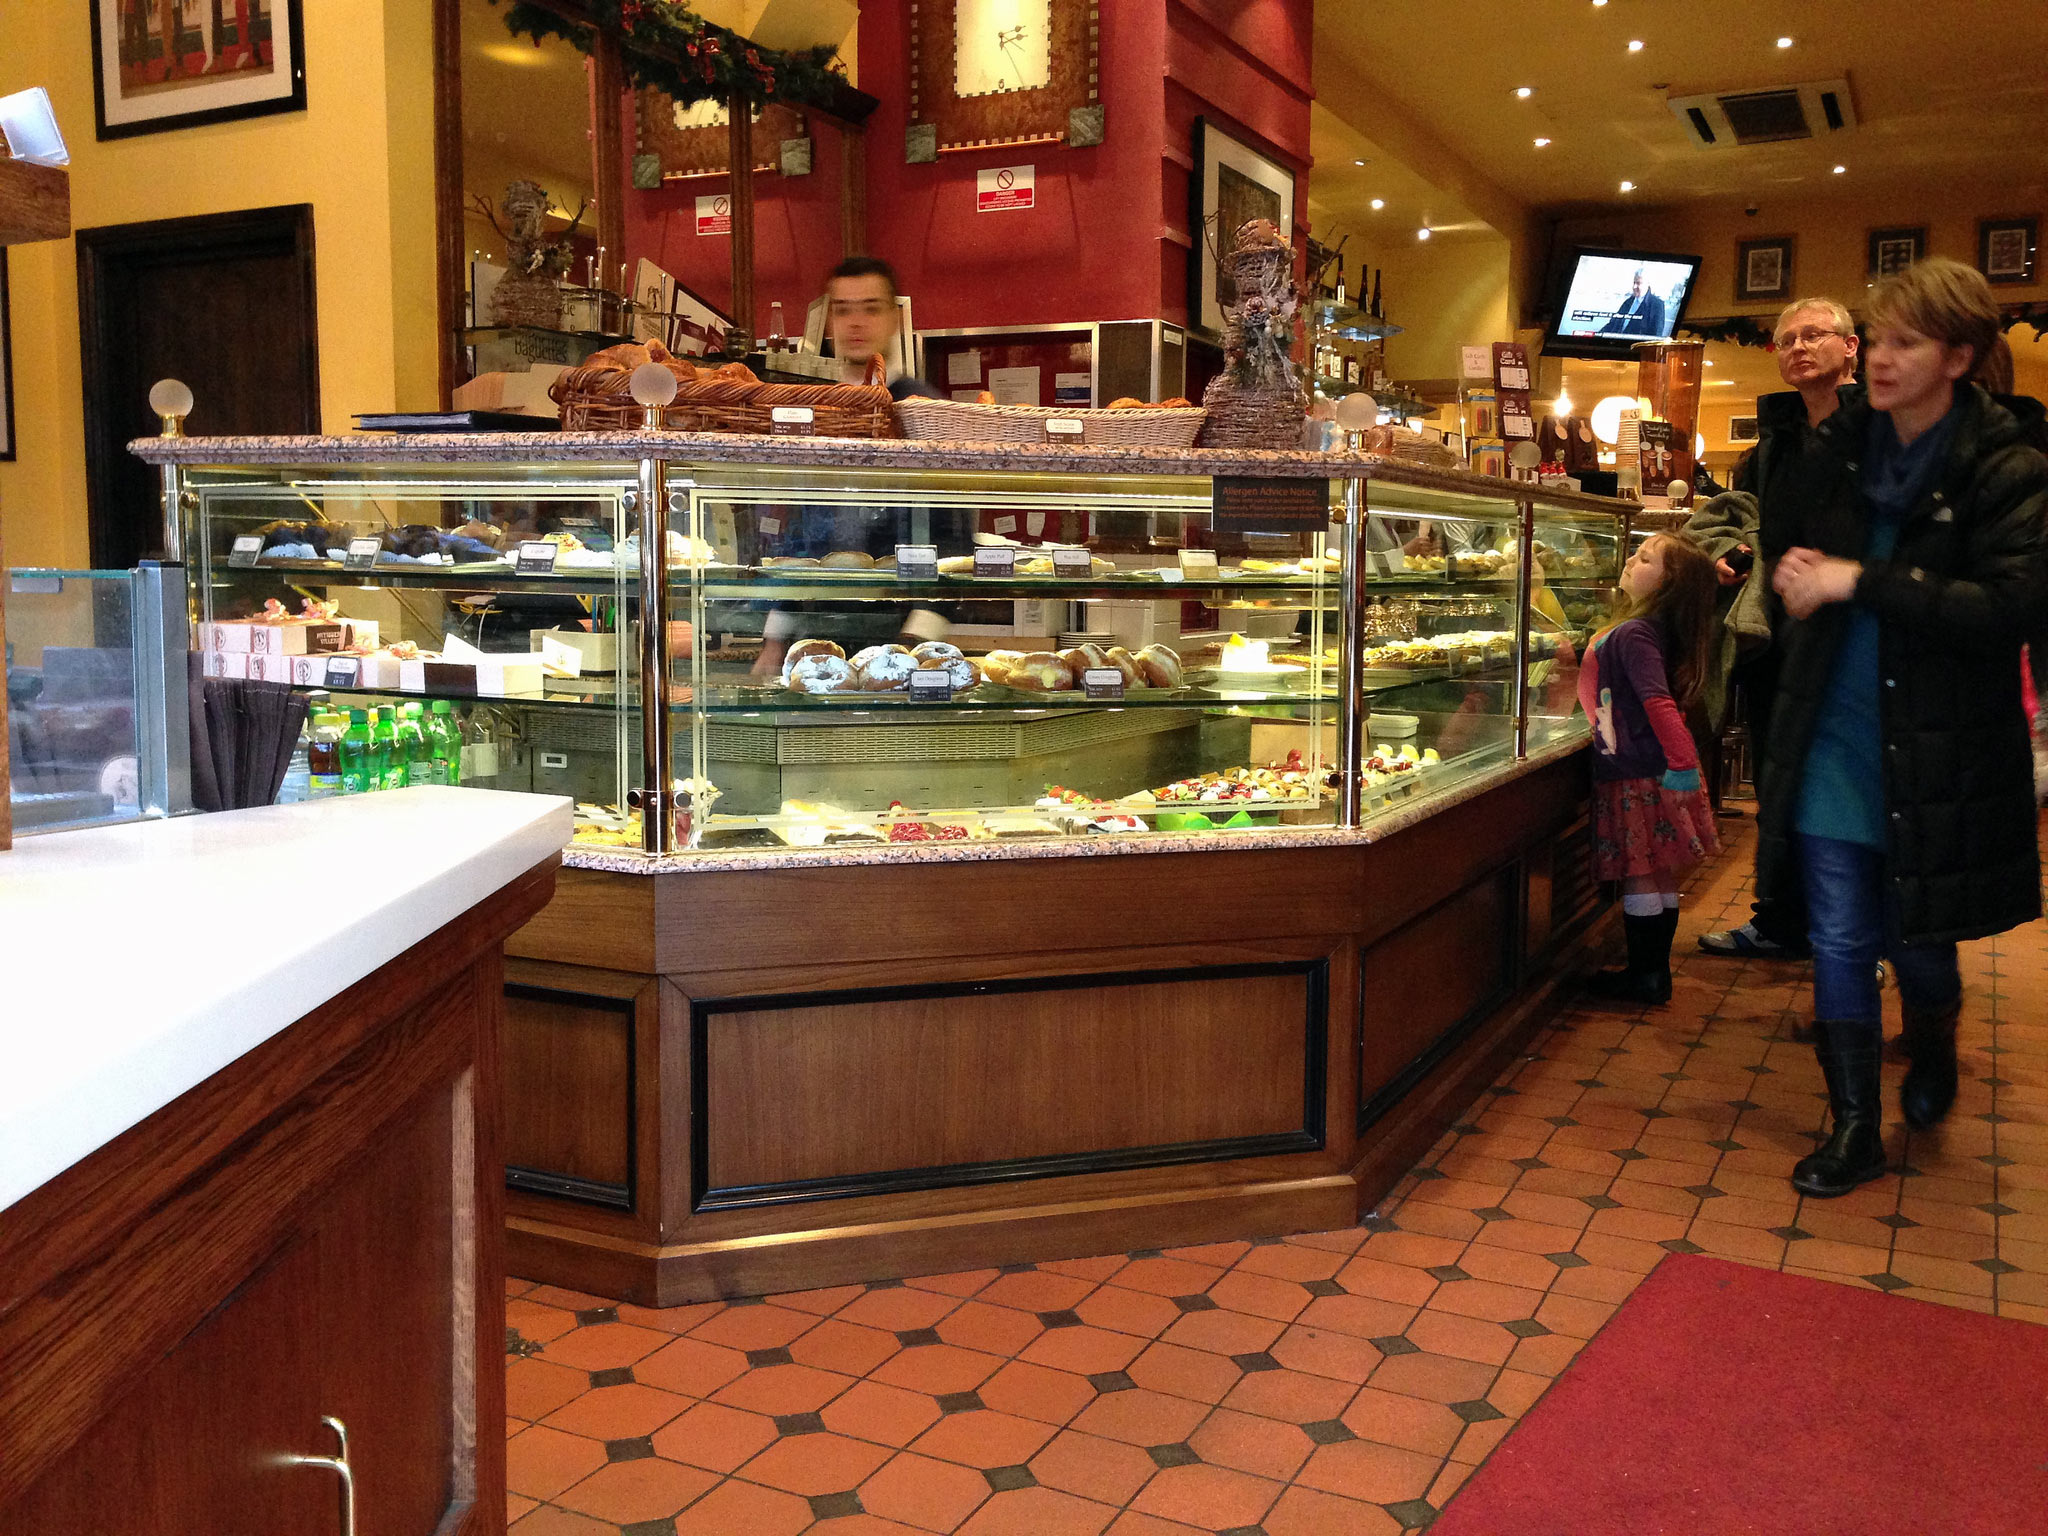 Pastry counter at Patisserie Valerie in London. Photo by alphacityguides.